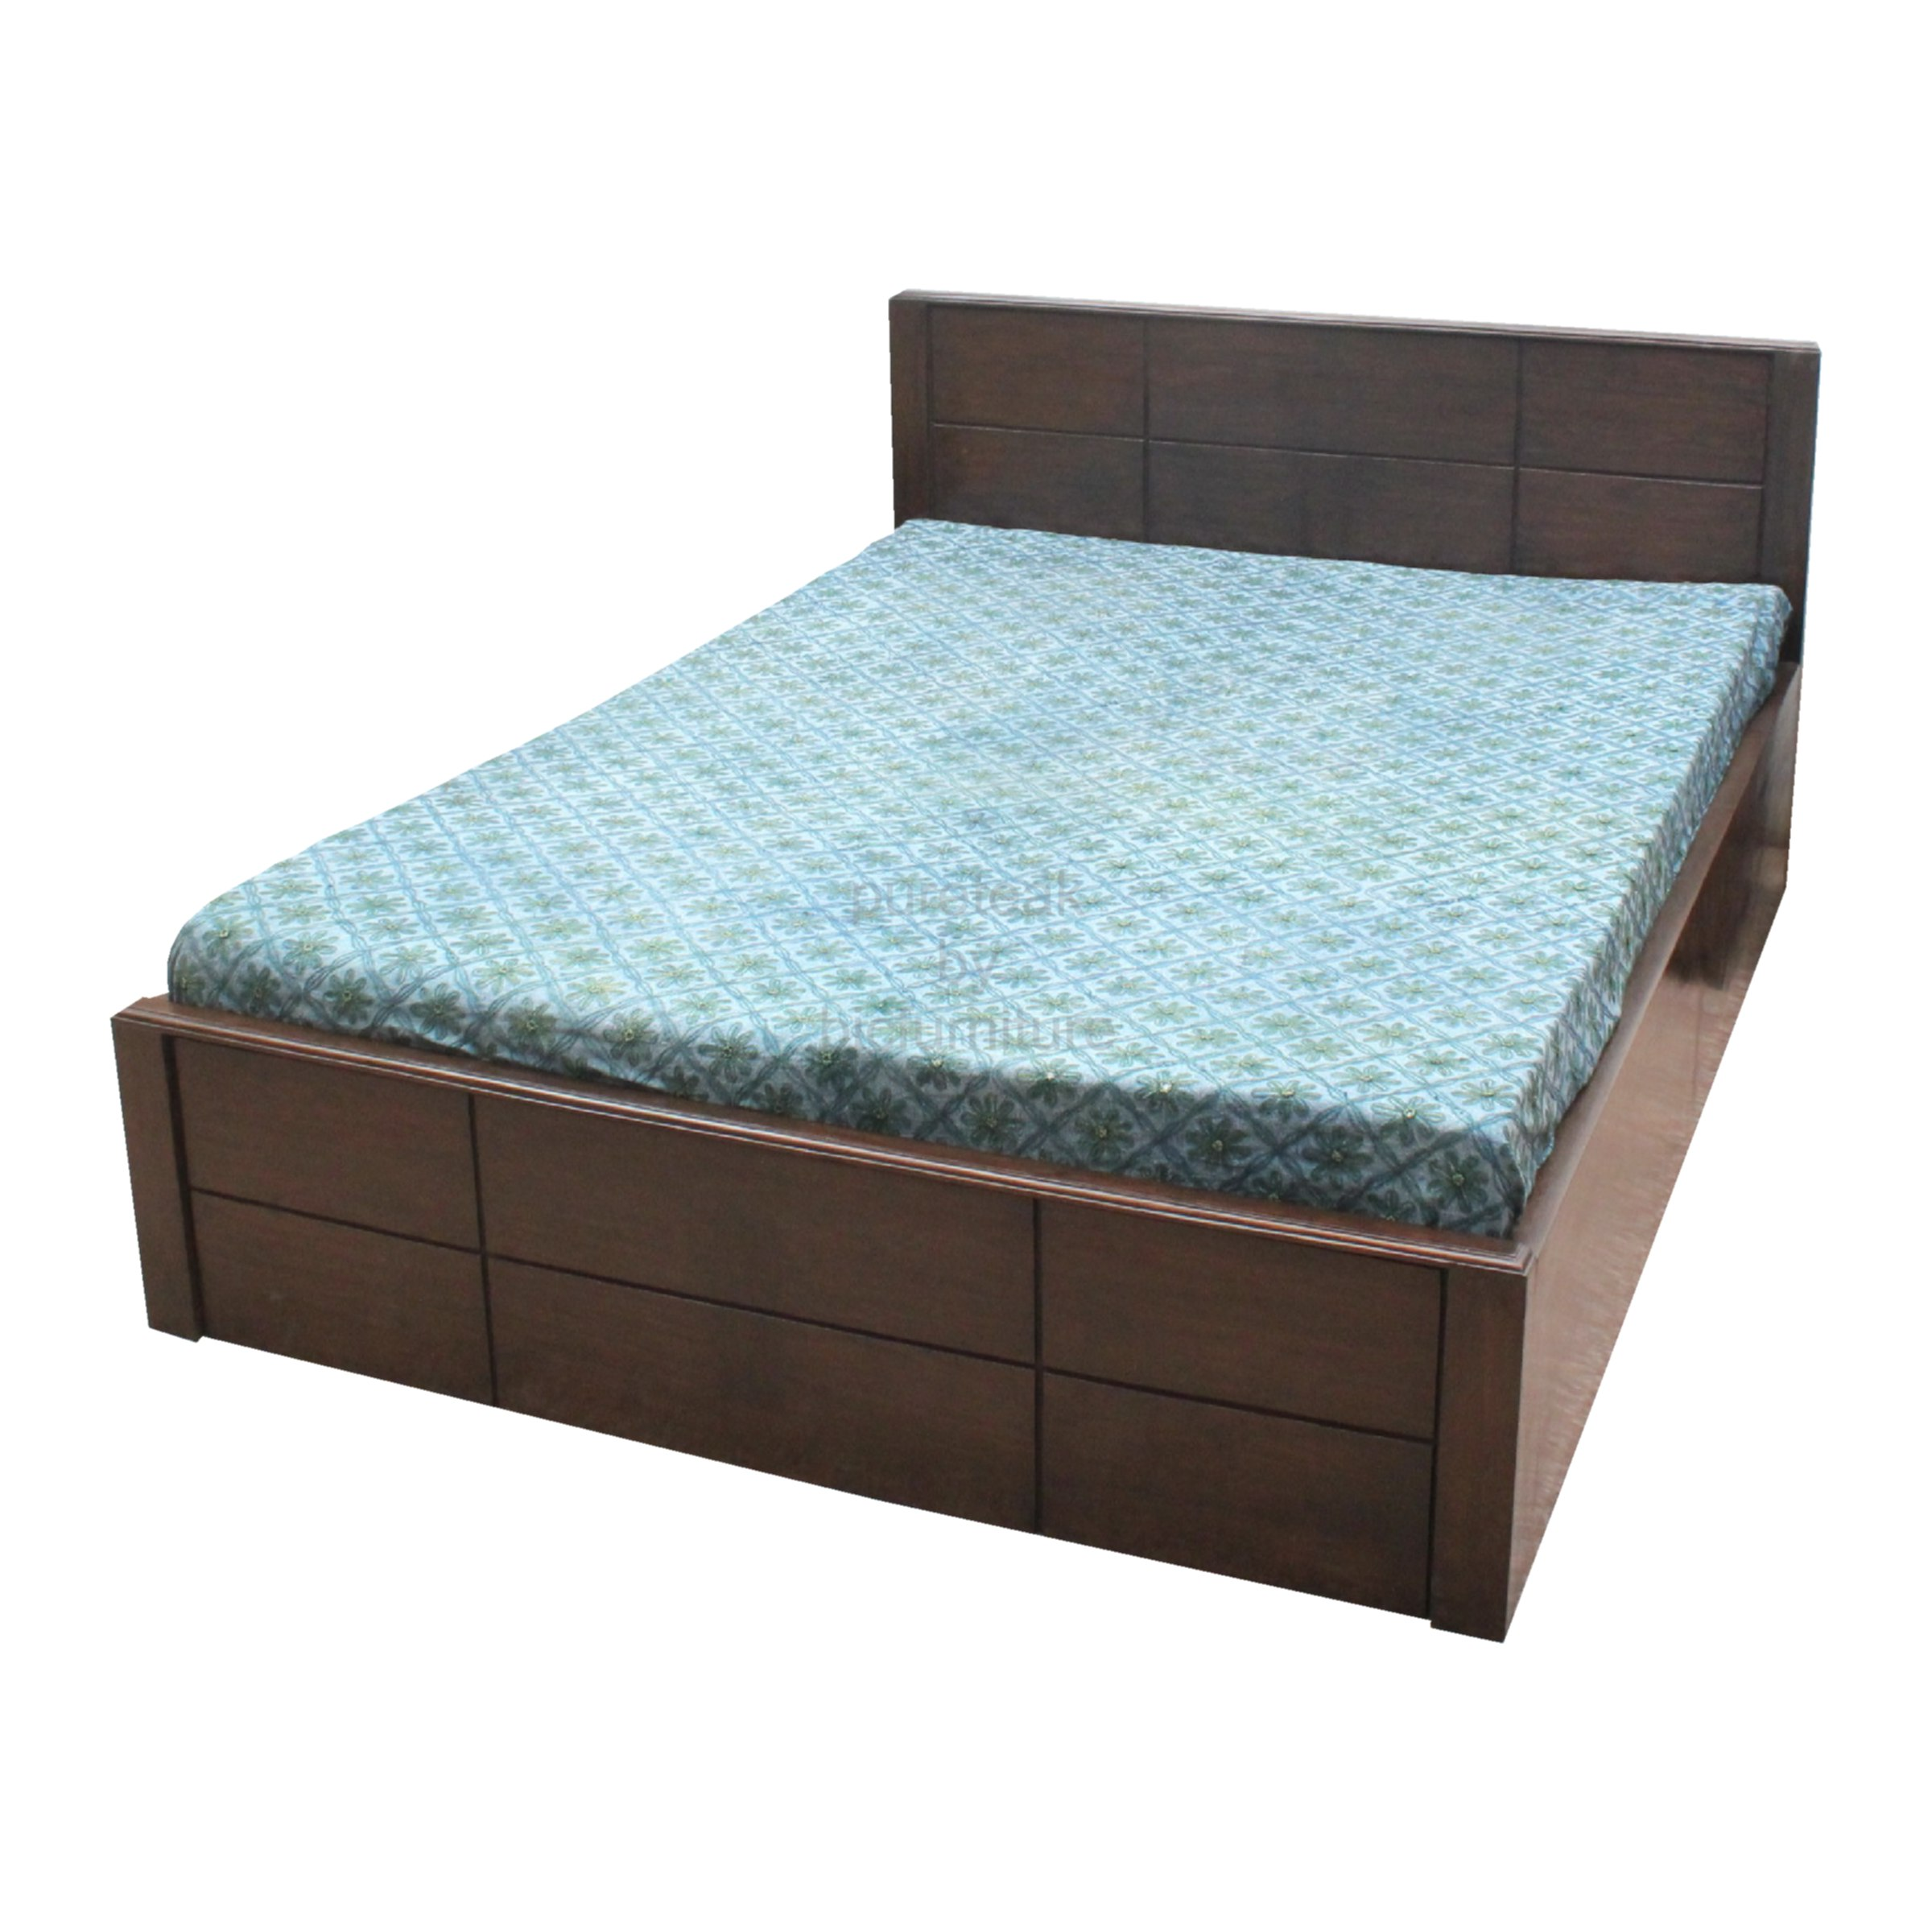 Wooden box bed designs pictures in india bedroom and bed reviews Wooden bed furniture